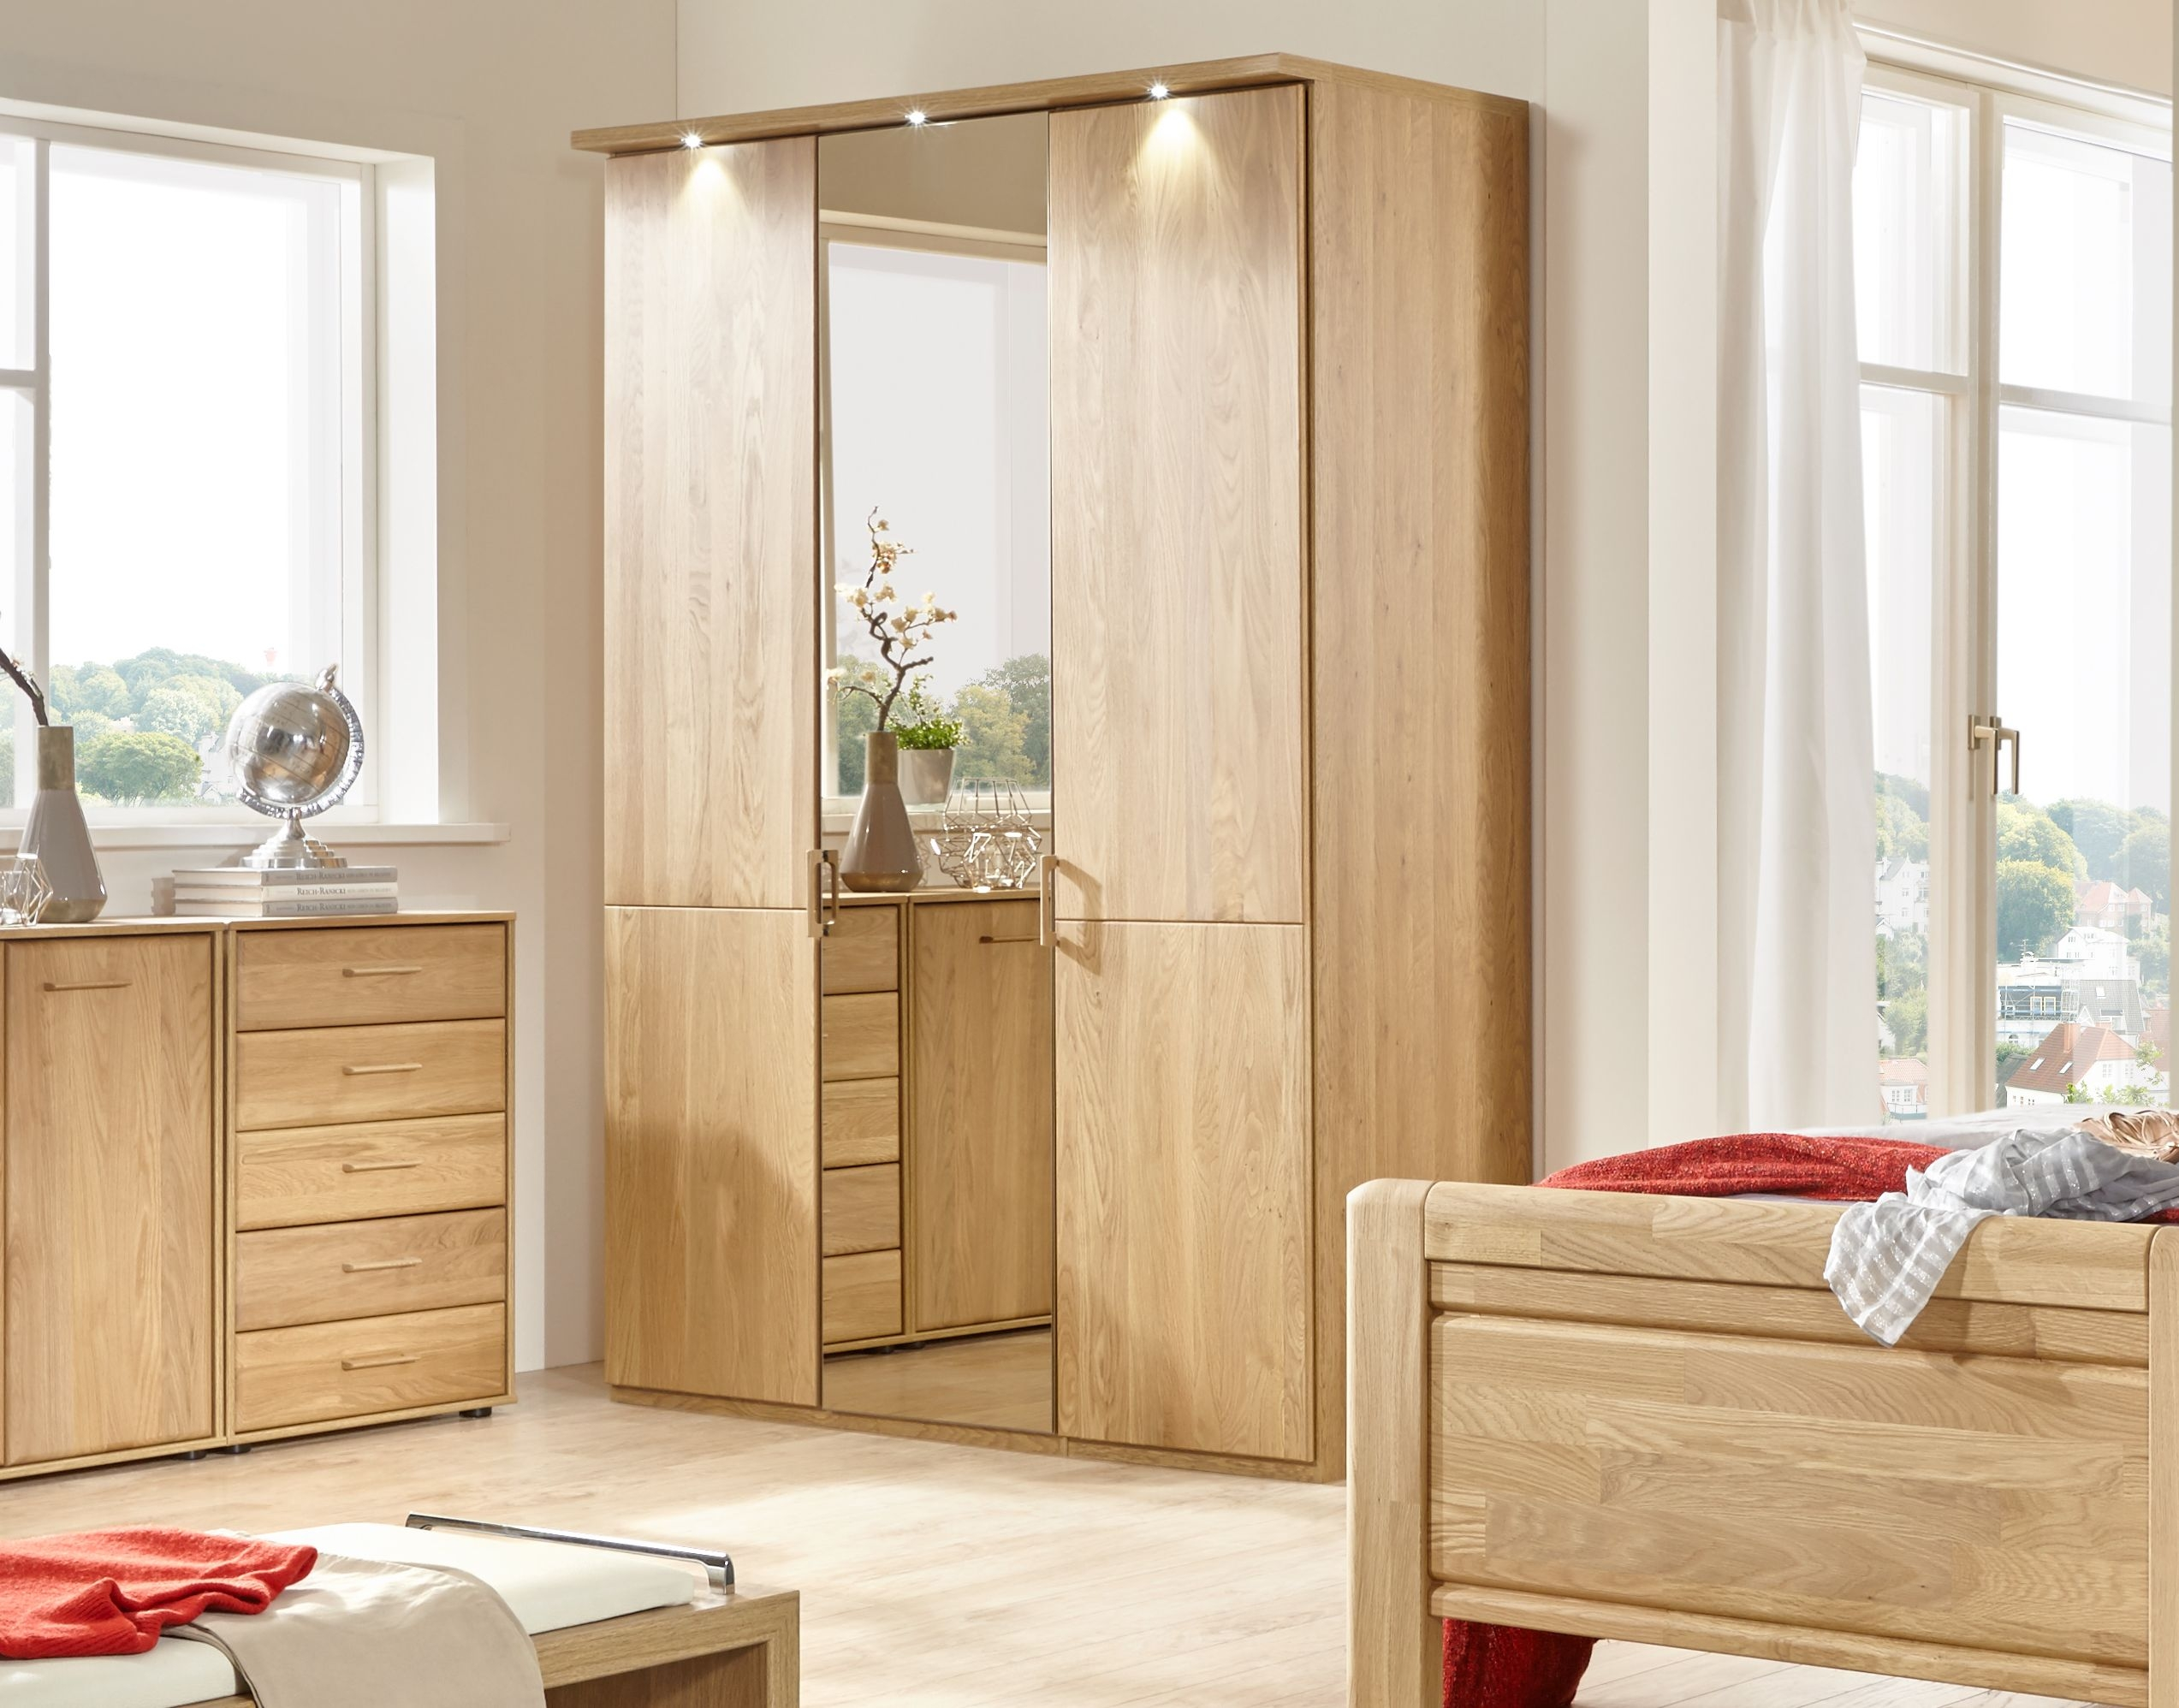 Wiemann Lido 8 Door 6 Mirror Wardrobe in Oak - W 400cm